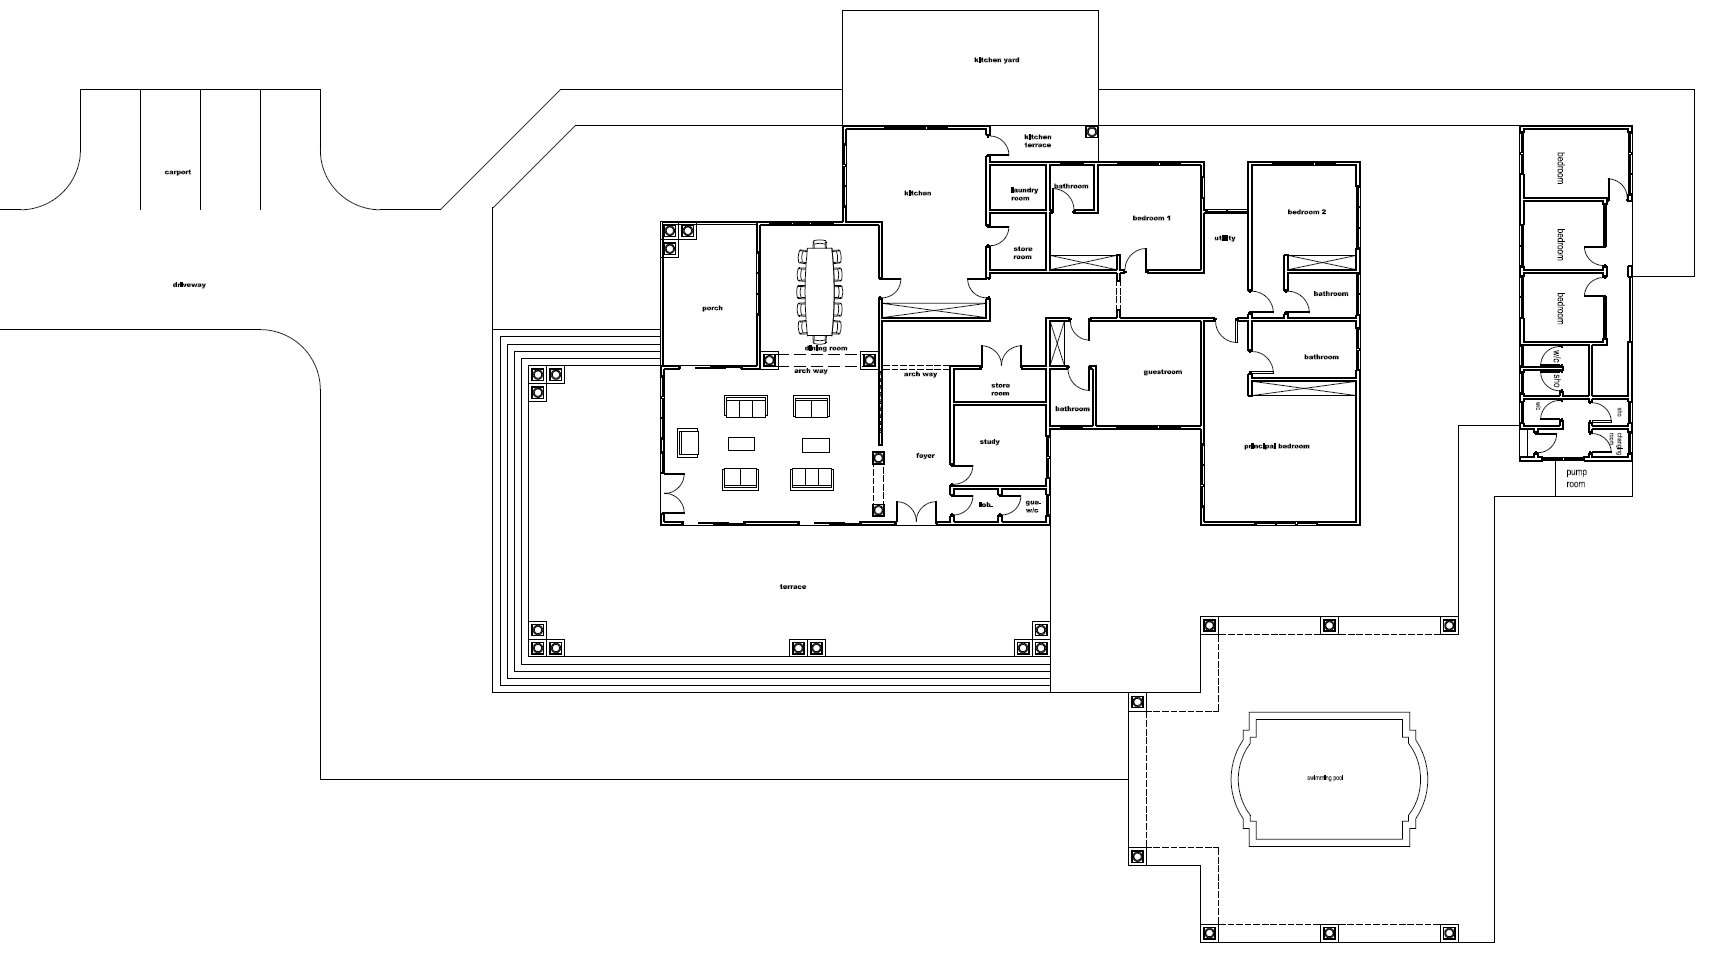 Ghana house plans daavi house plan How to make plan for house